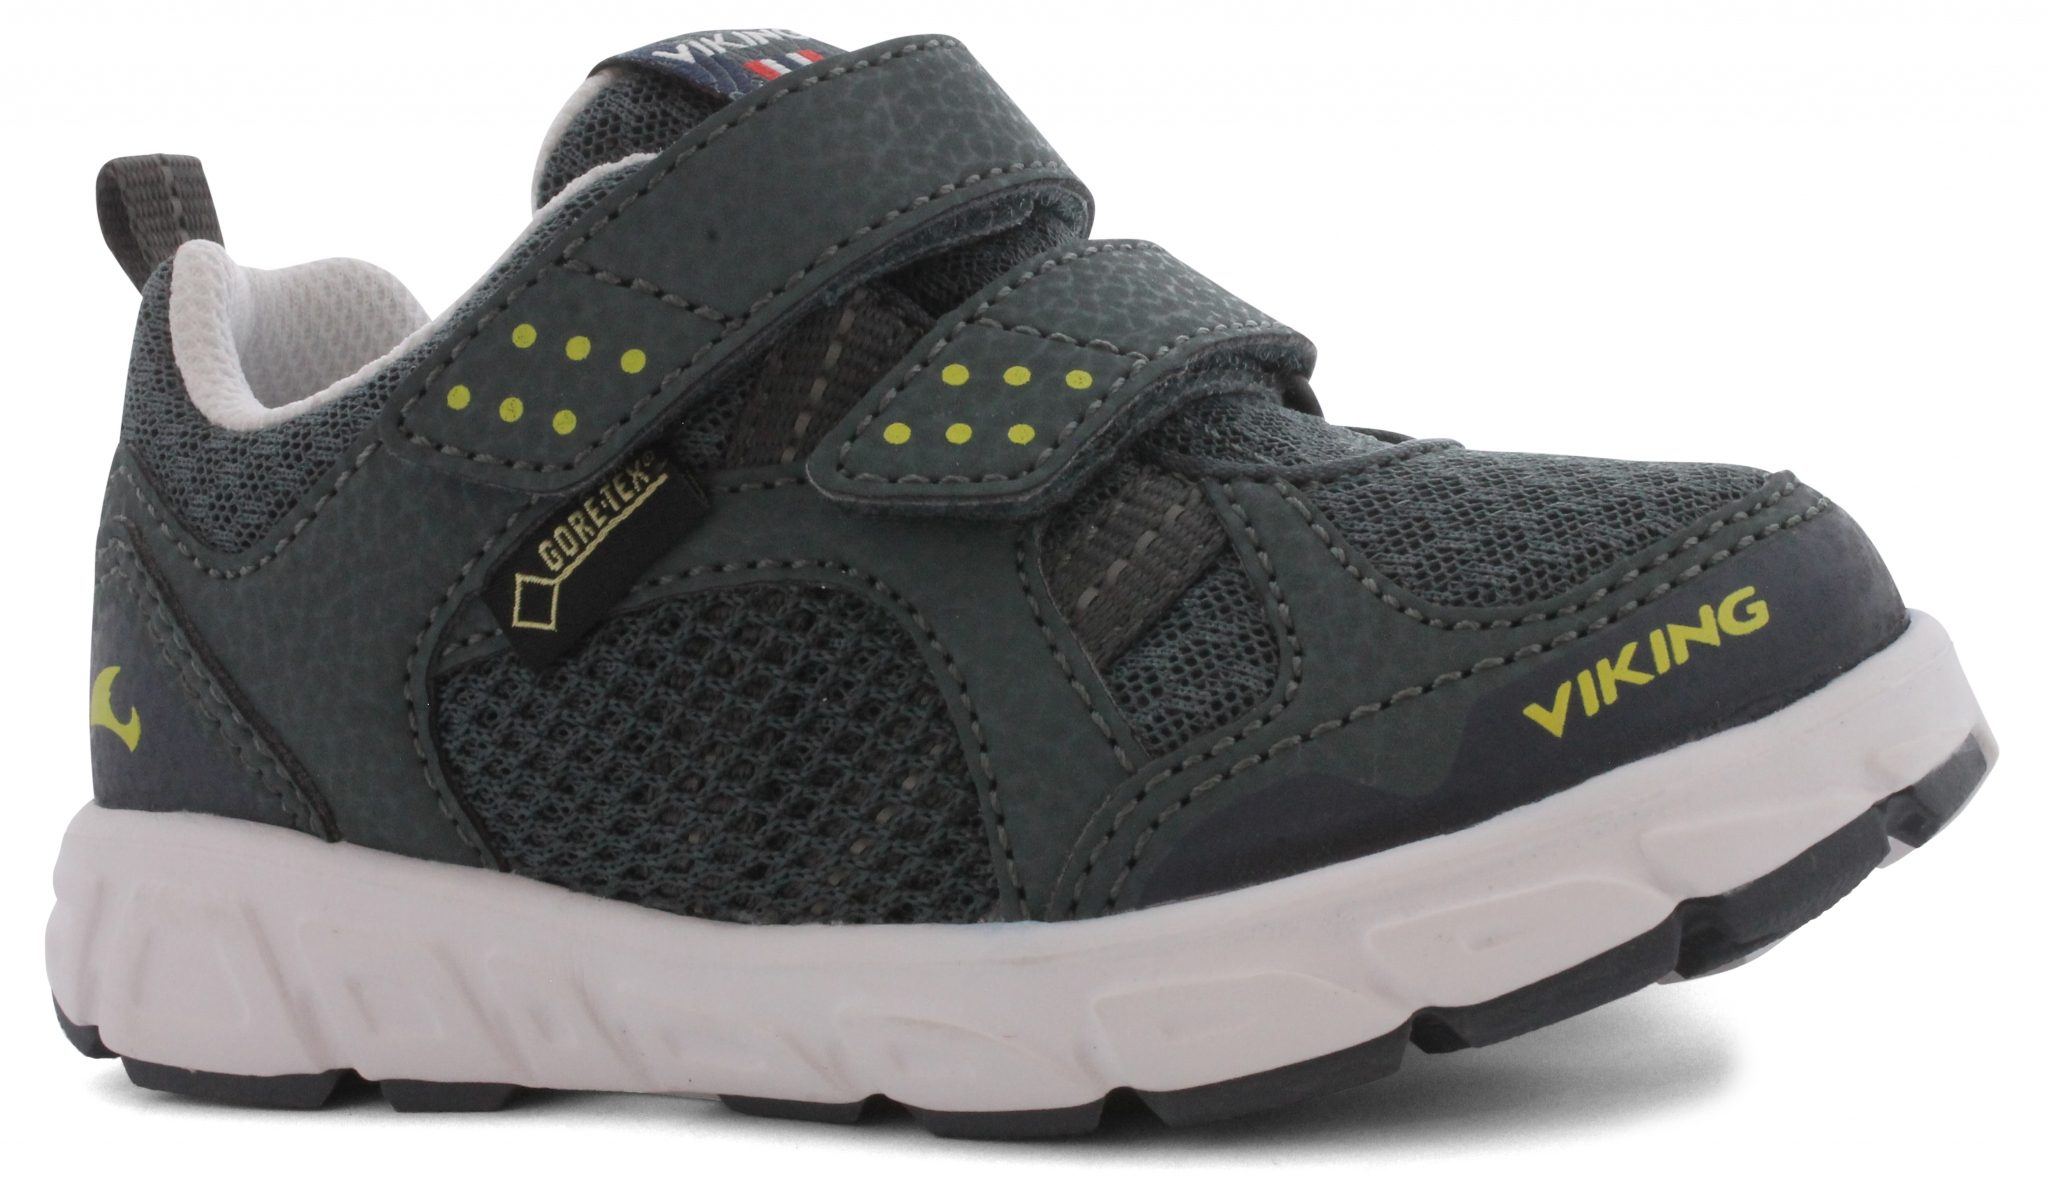 VIKING Halbschuhe »Hobbit GTX Shoes Kids«